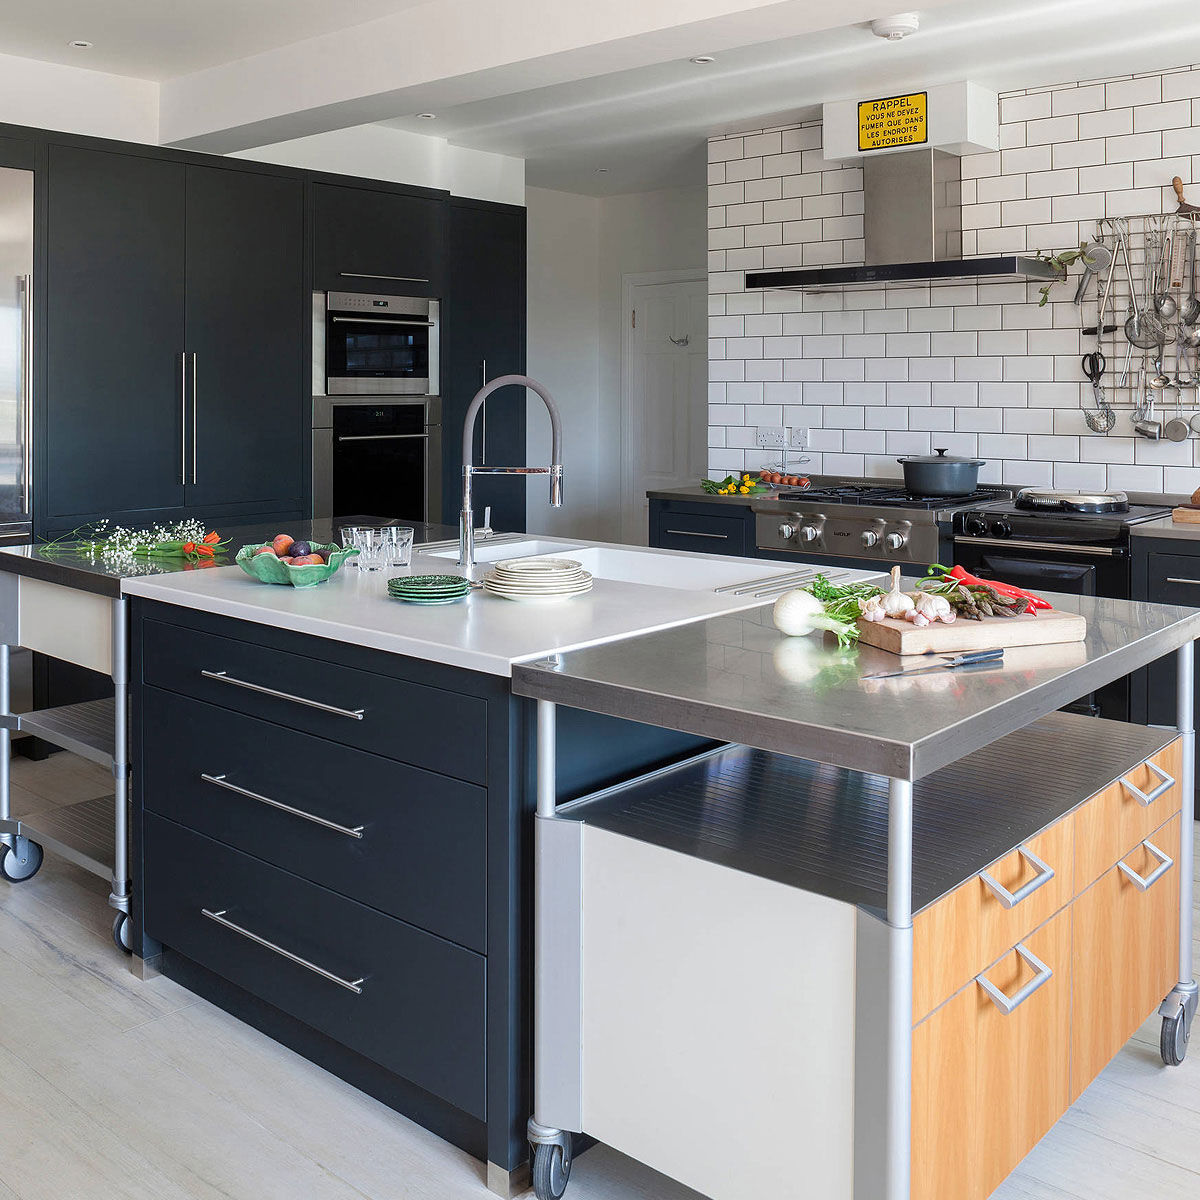 84 Stainless Steel Countertop Ideas Photos Pros Cons